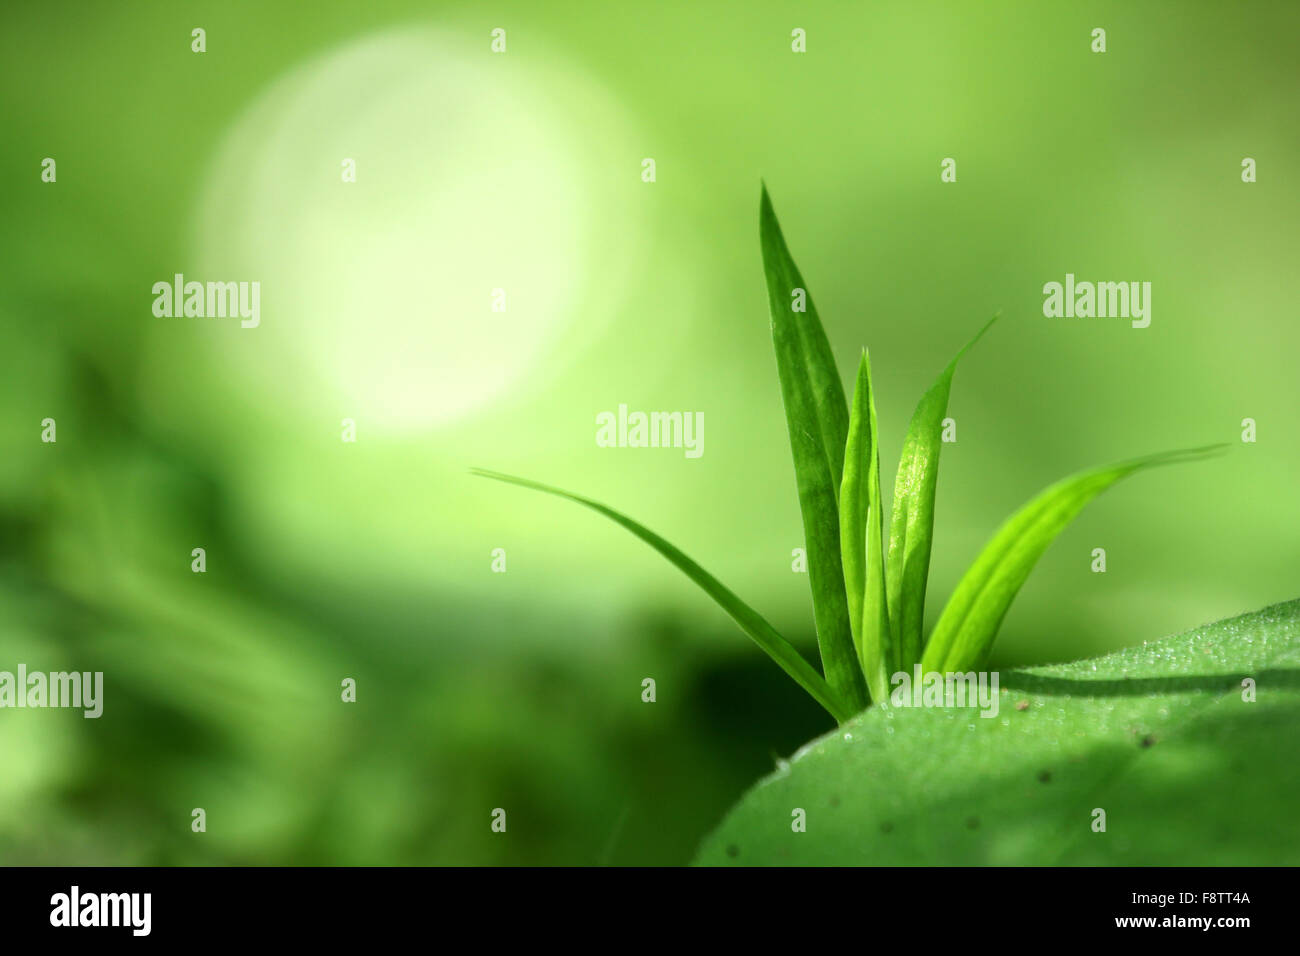 Macrophotography of single green plant on the green blurred background with yellow-white single bokeh - Stock Image